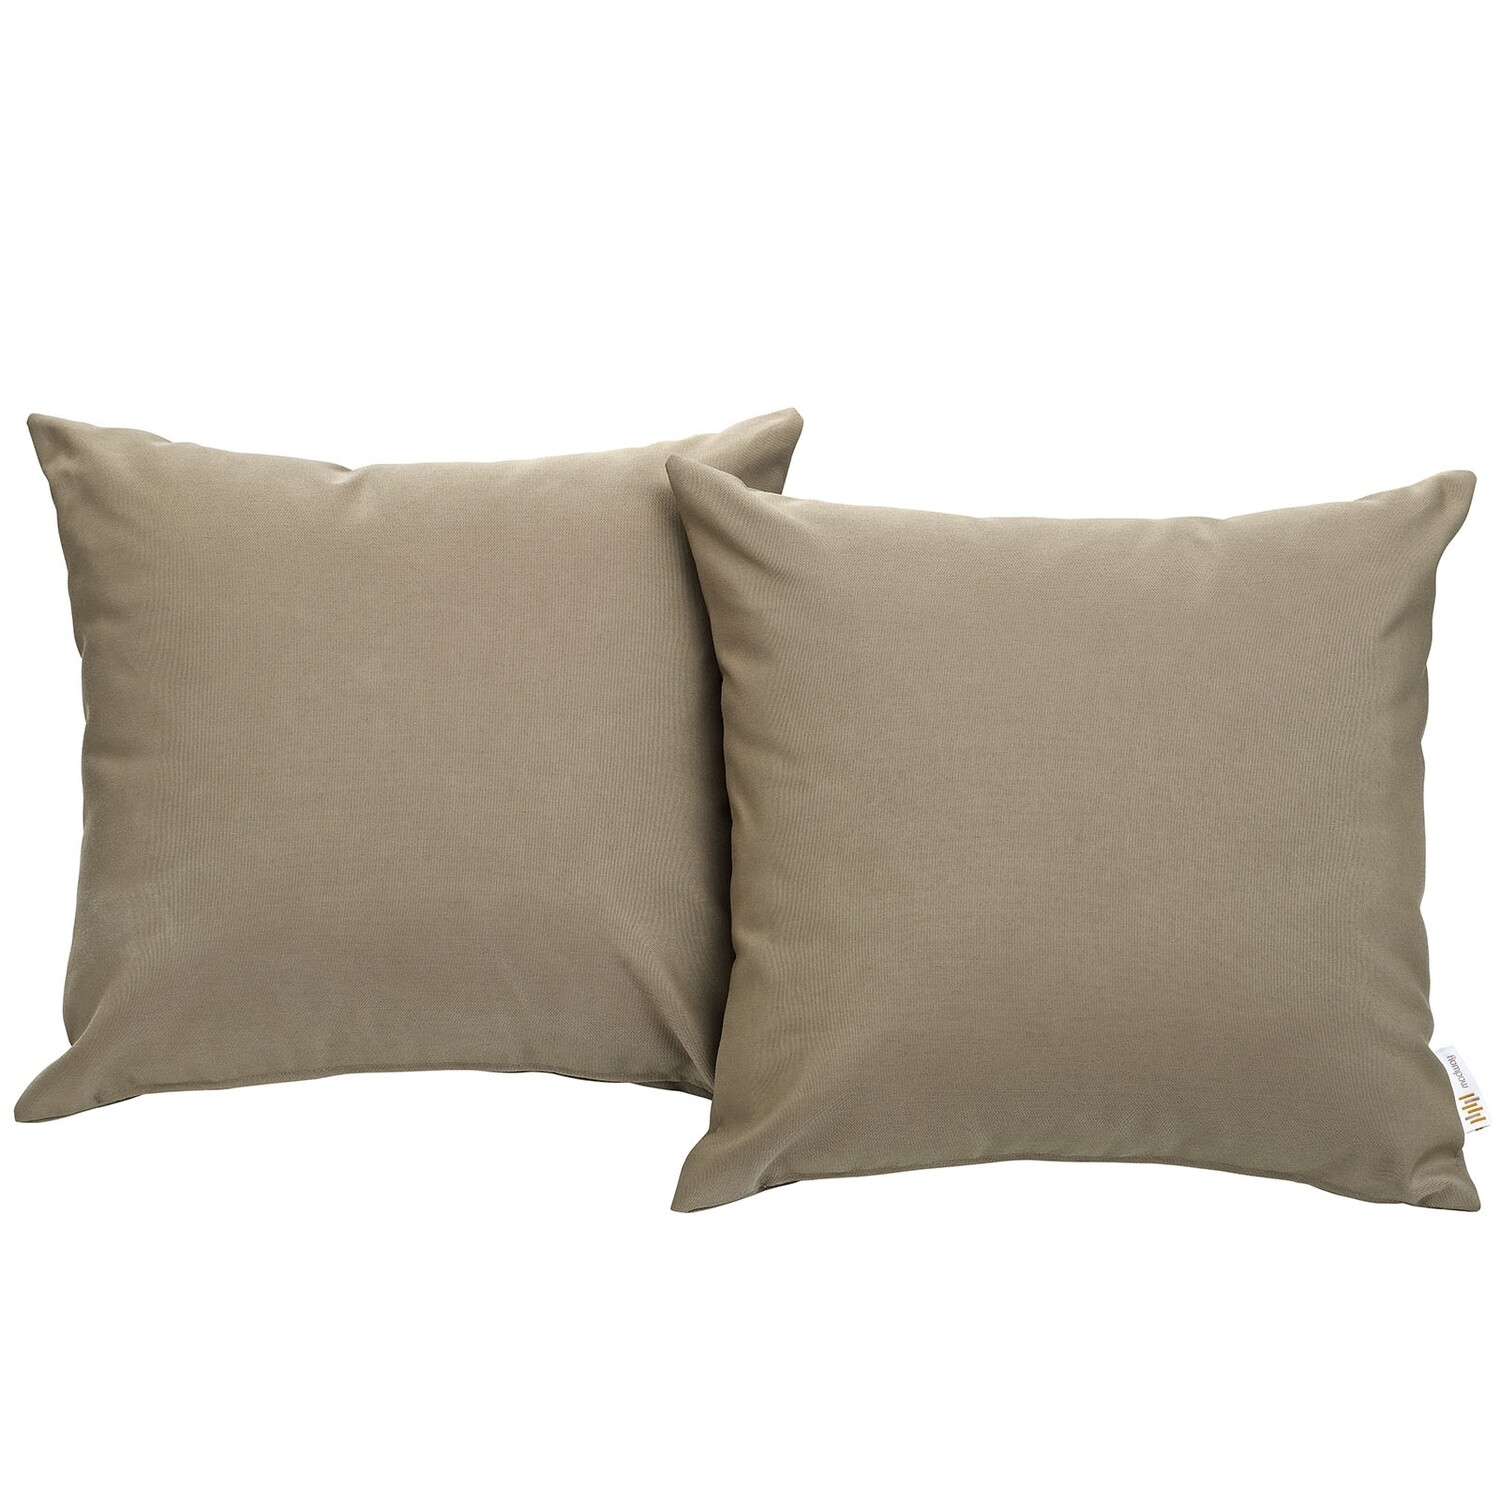 "Hinsdale Patio 2 Piece Pillow Set  17"" x 17"" in Mocha"